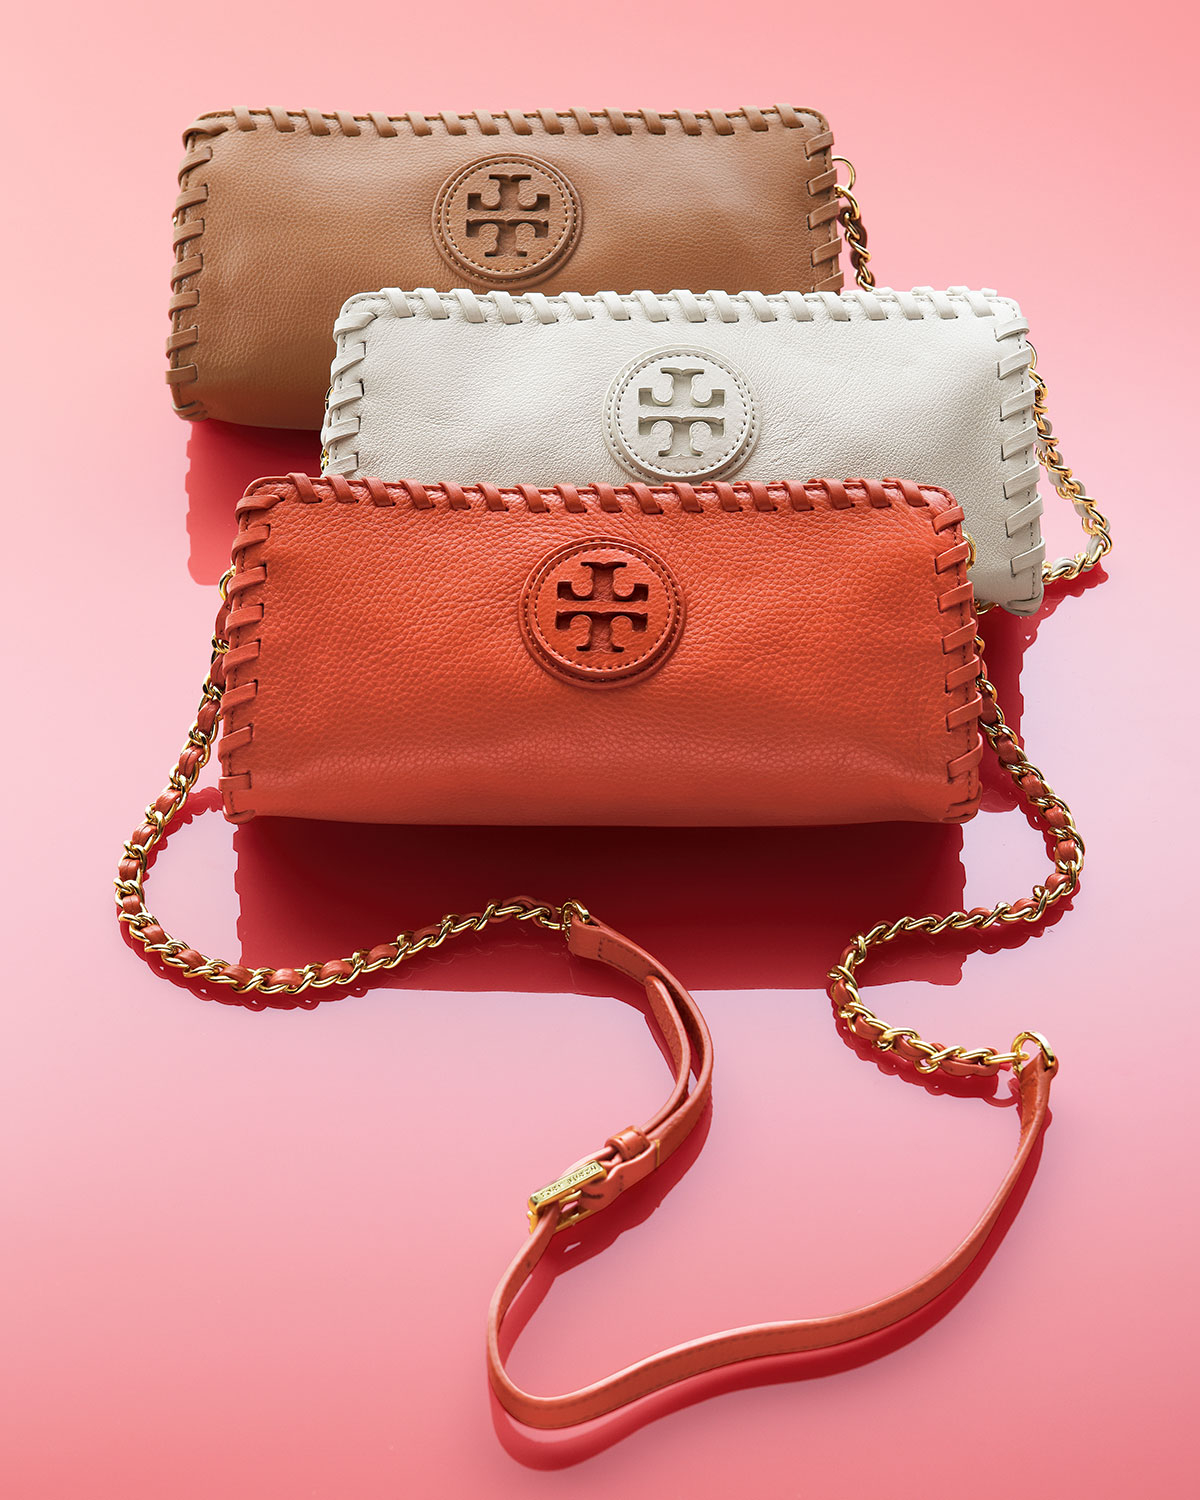 Tory Burch Marion Whipstitch Crossbody Clutch Bag Ivory In